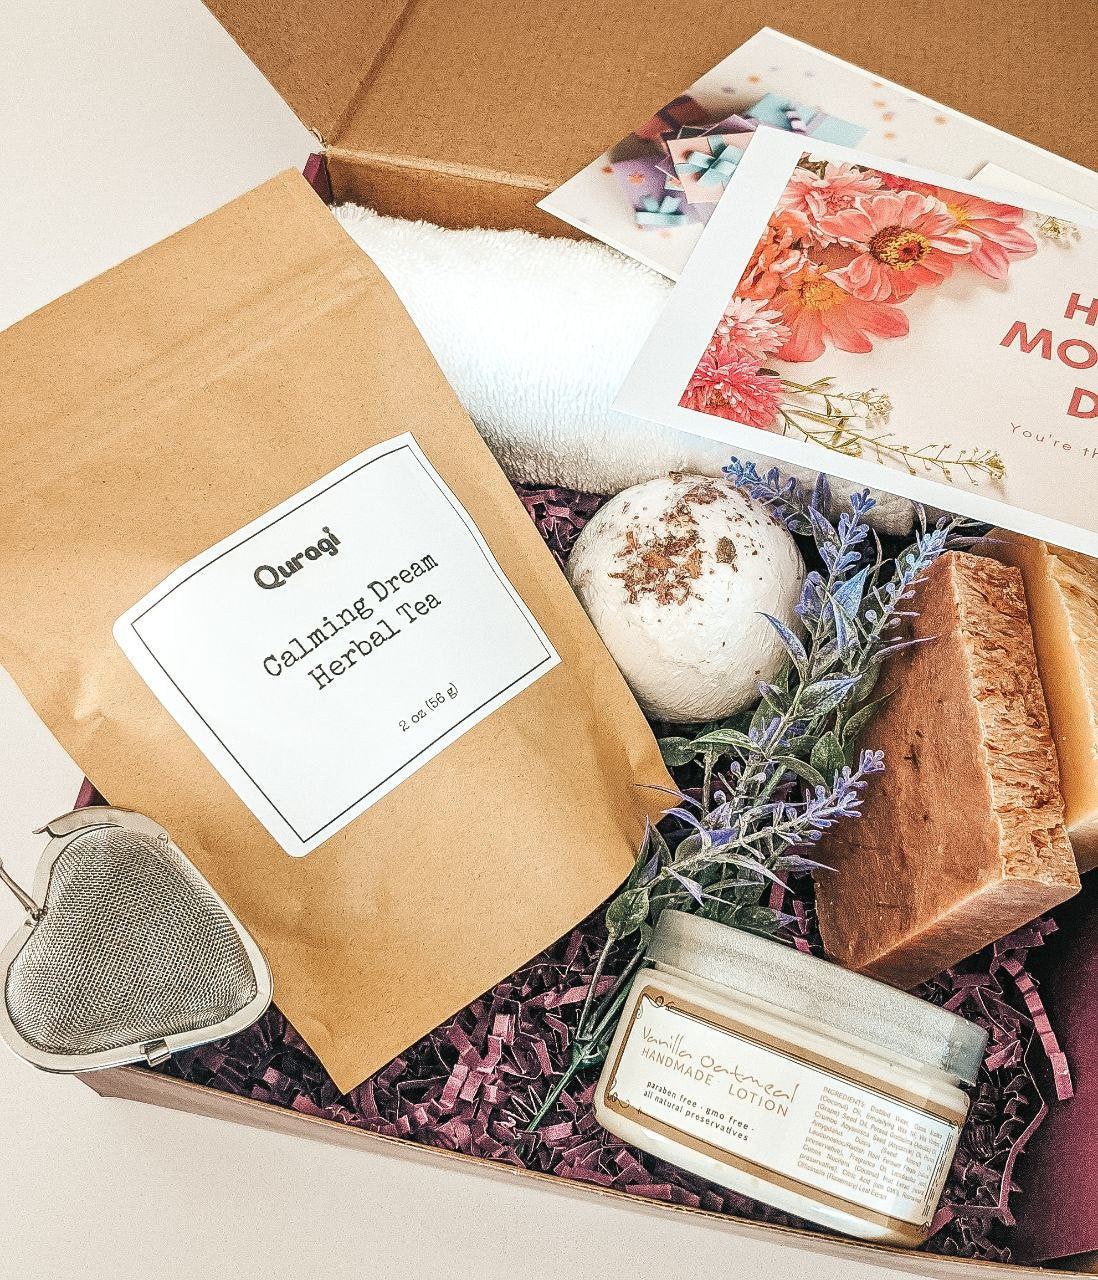 Christmas Gift Box, Miss You Gift, Gift for Mom Gift, Personalized Gift, Self Care Package, Thinking Of You, Spa Set, Gift Box for Her